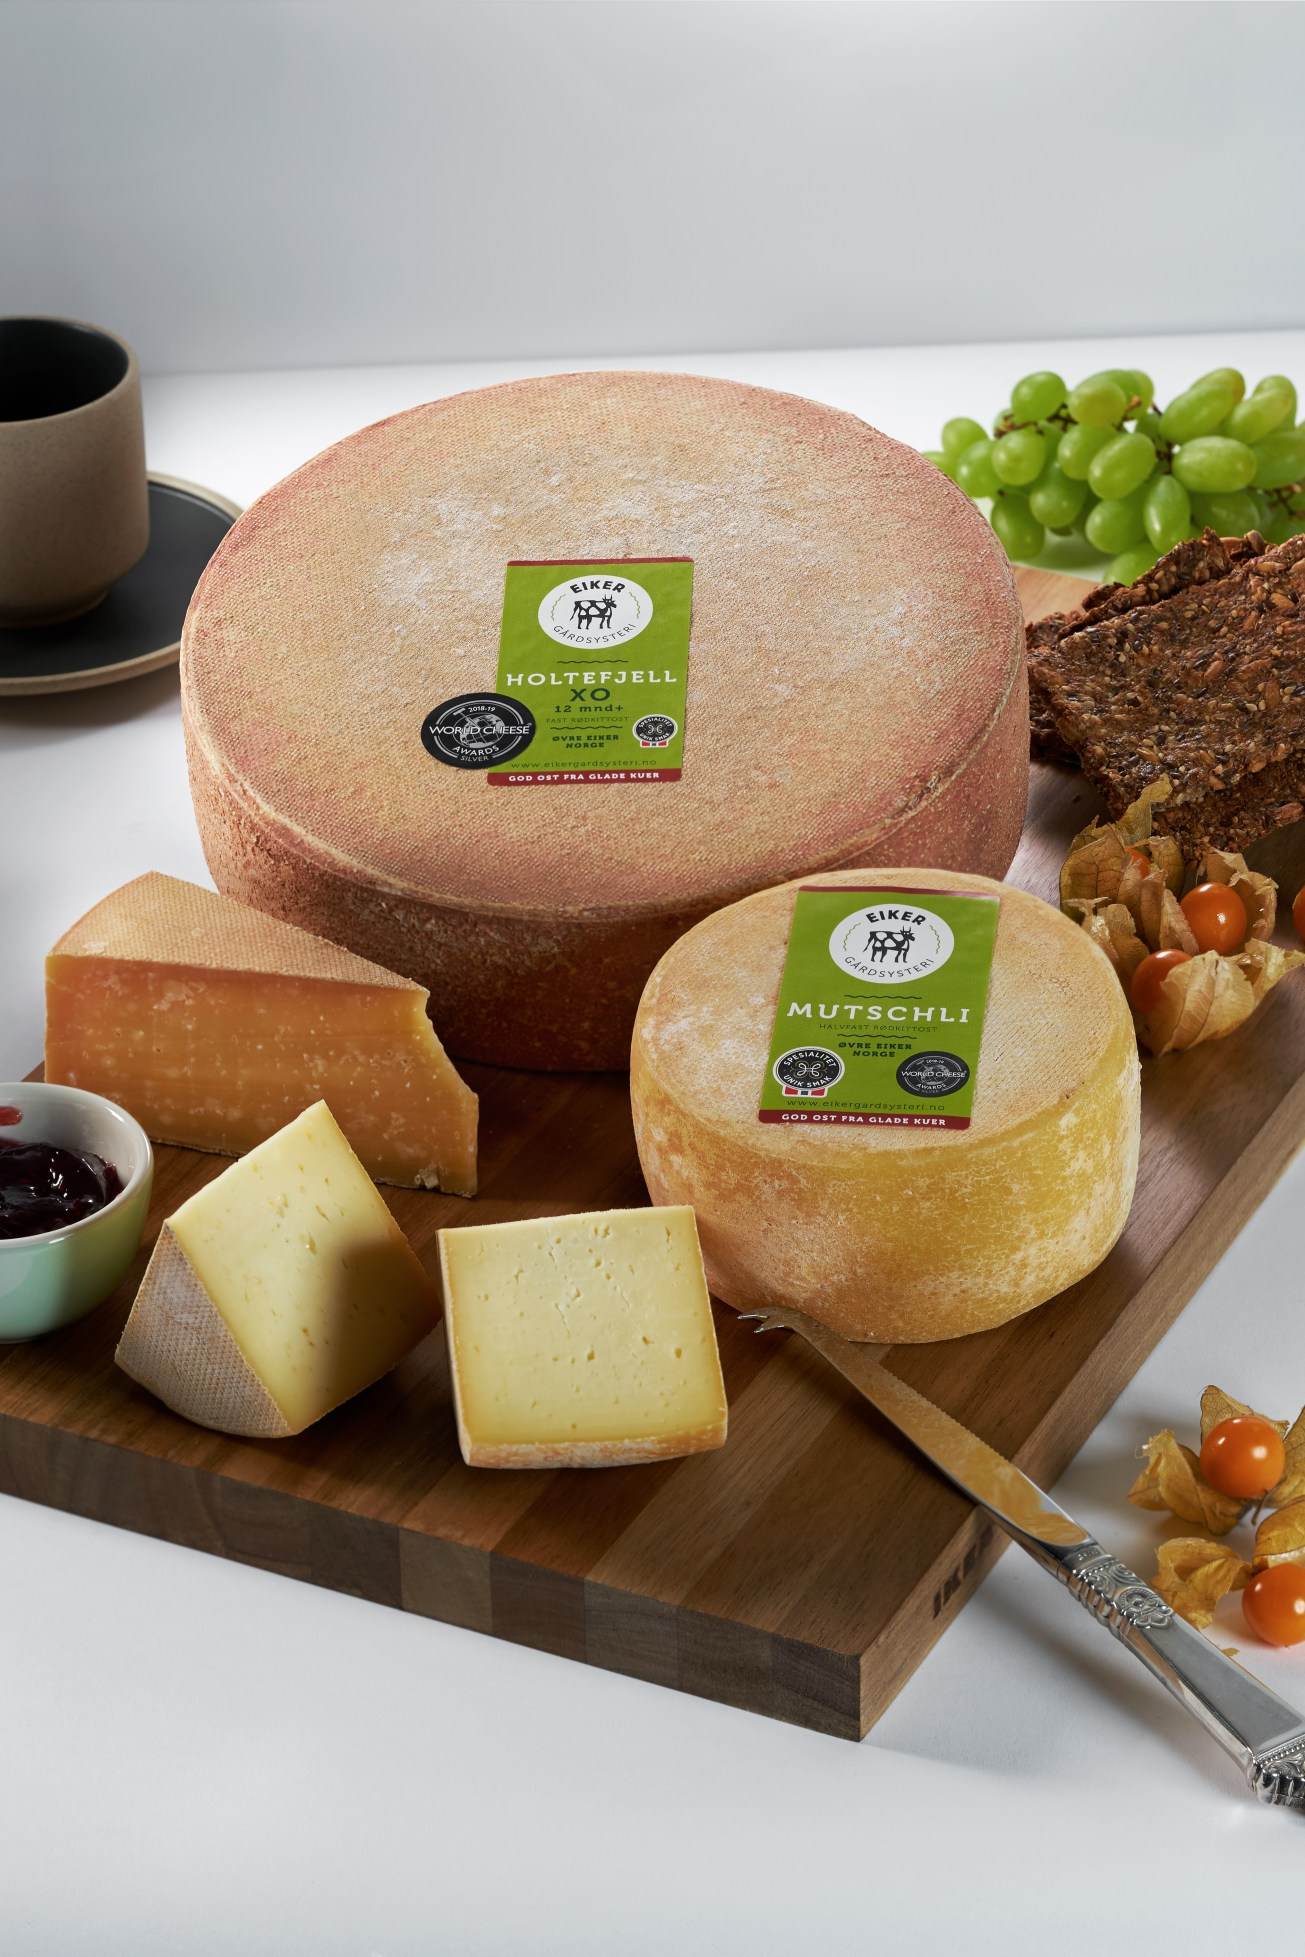 Lifestyle cheese shot for local cheese producer